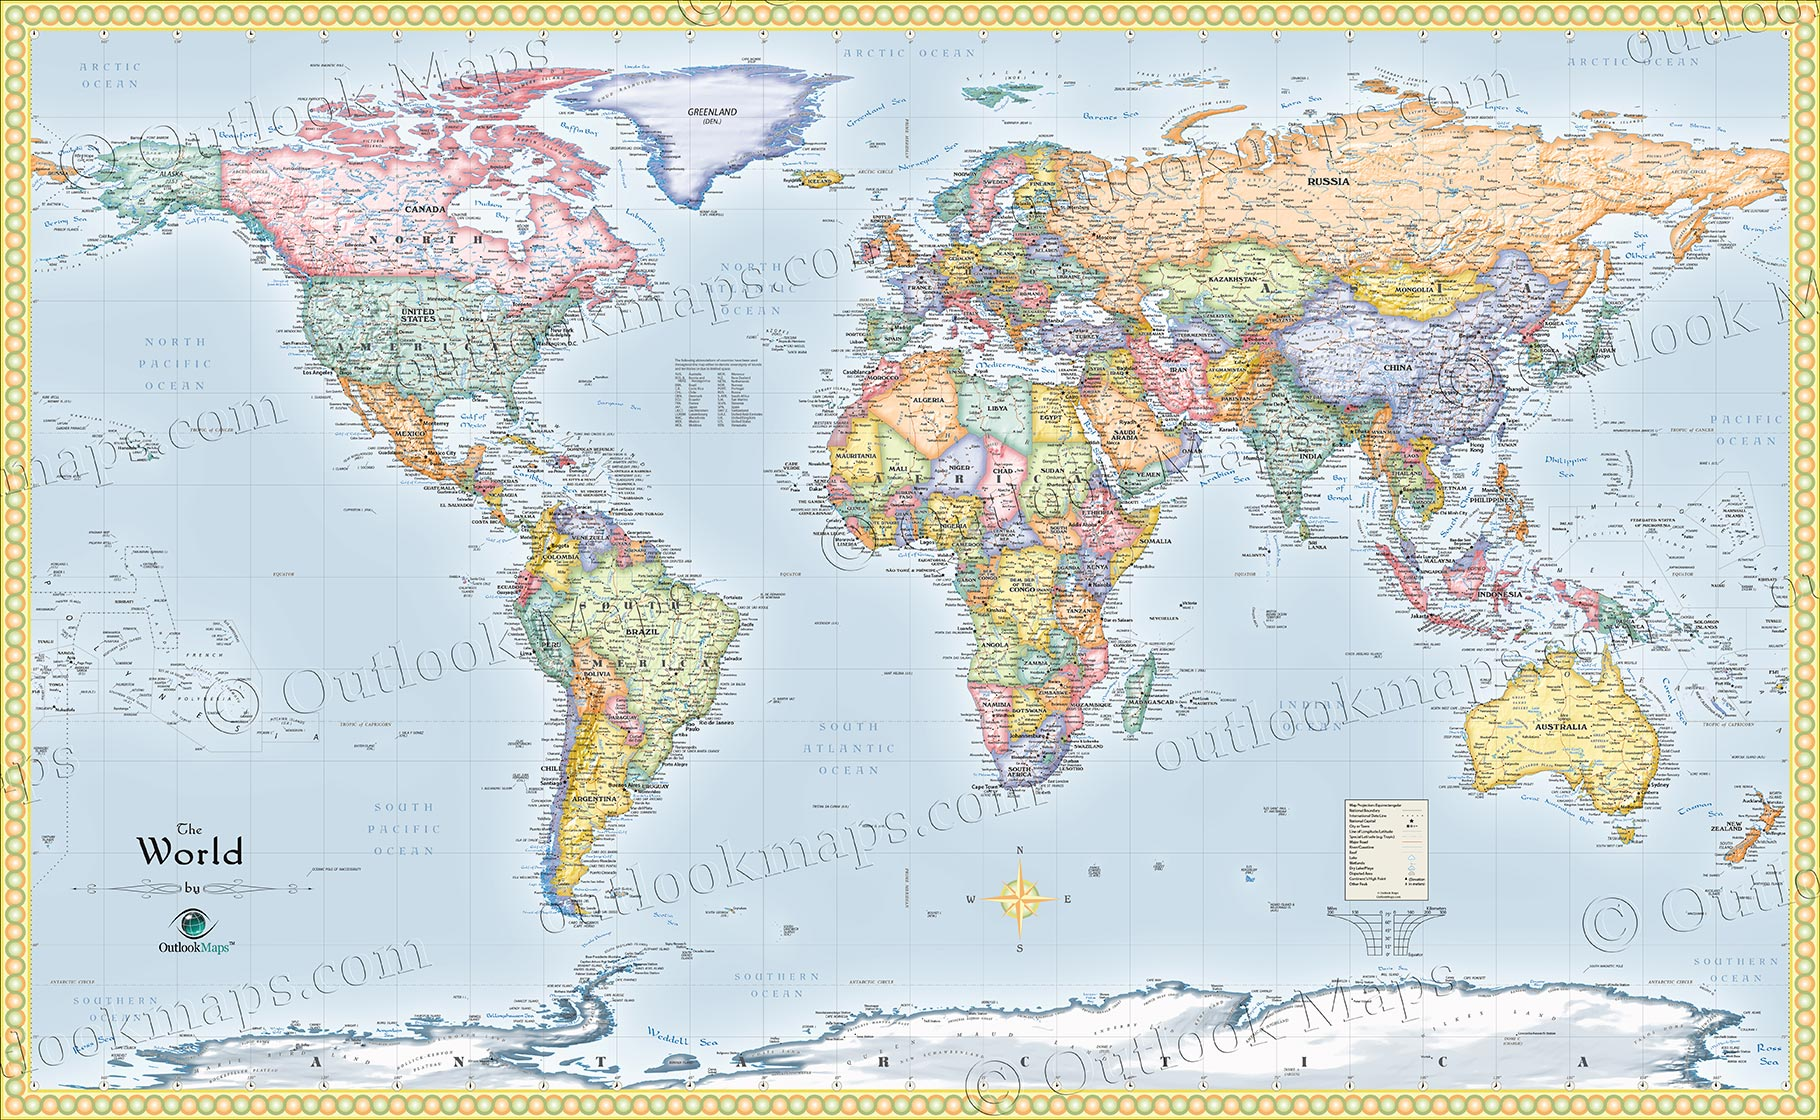 Wall Map Of The World World Political Wall Map | Standard World Map | Very Detailed Wall Map Of The World